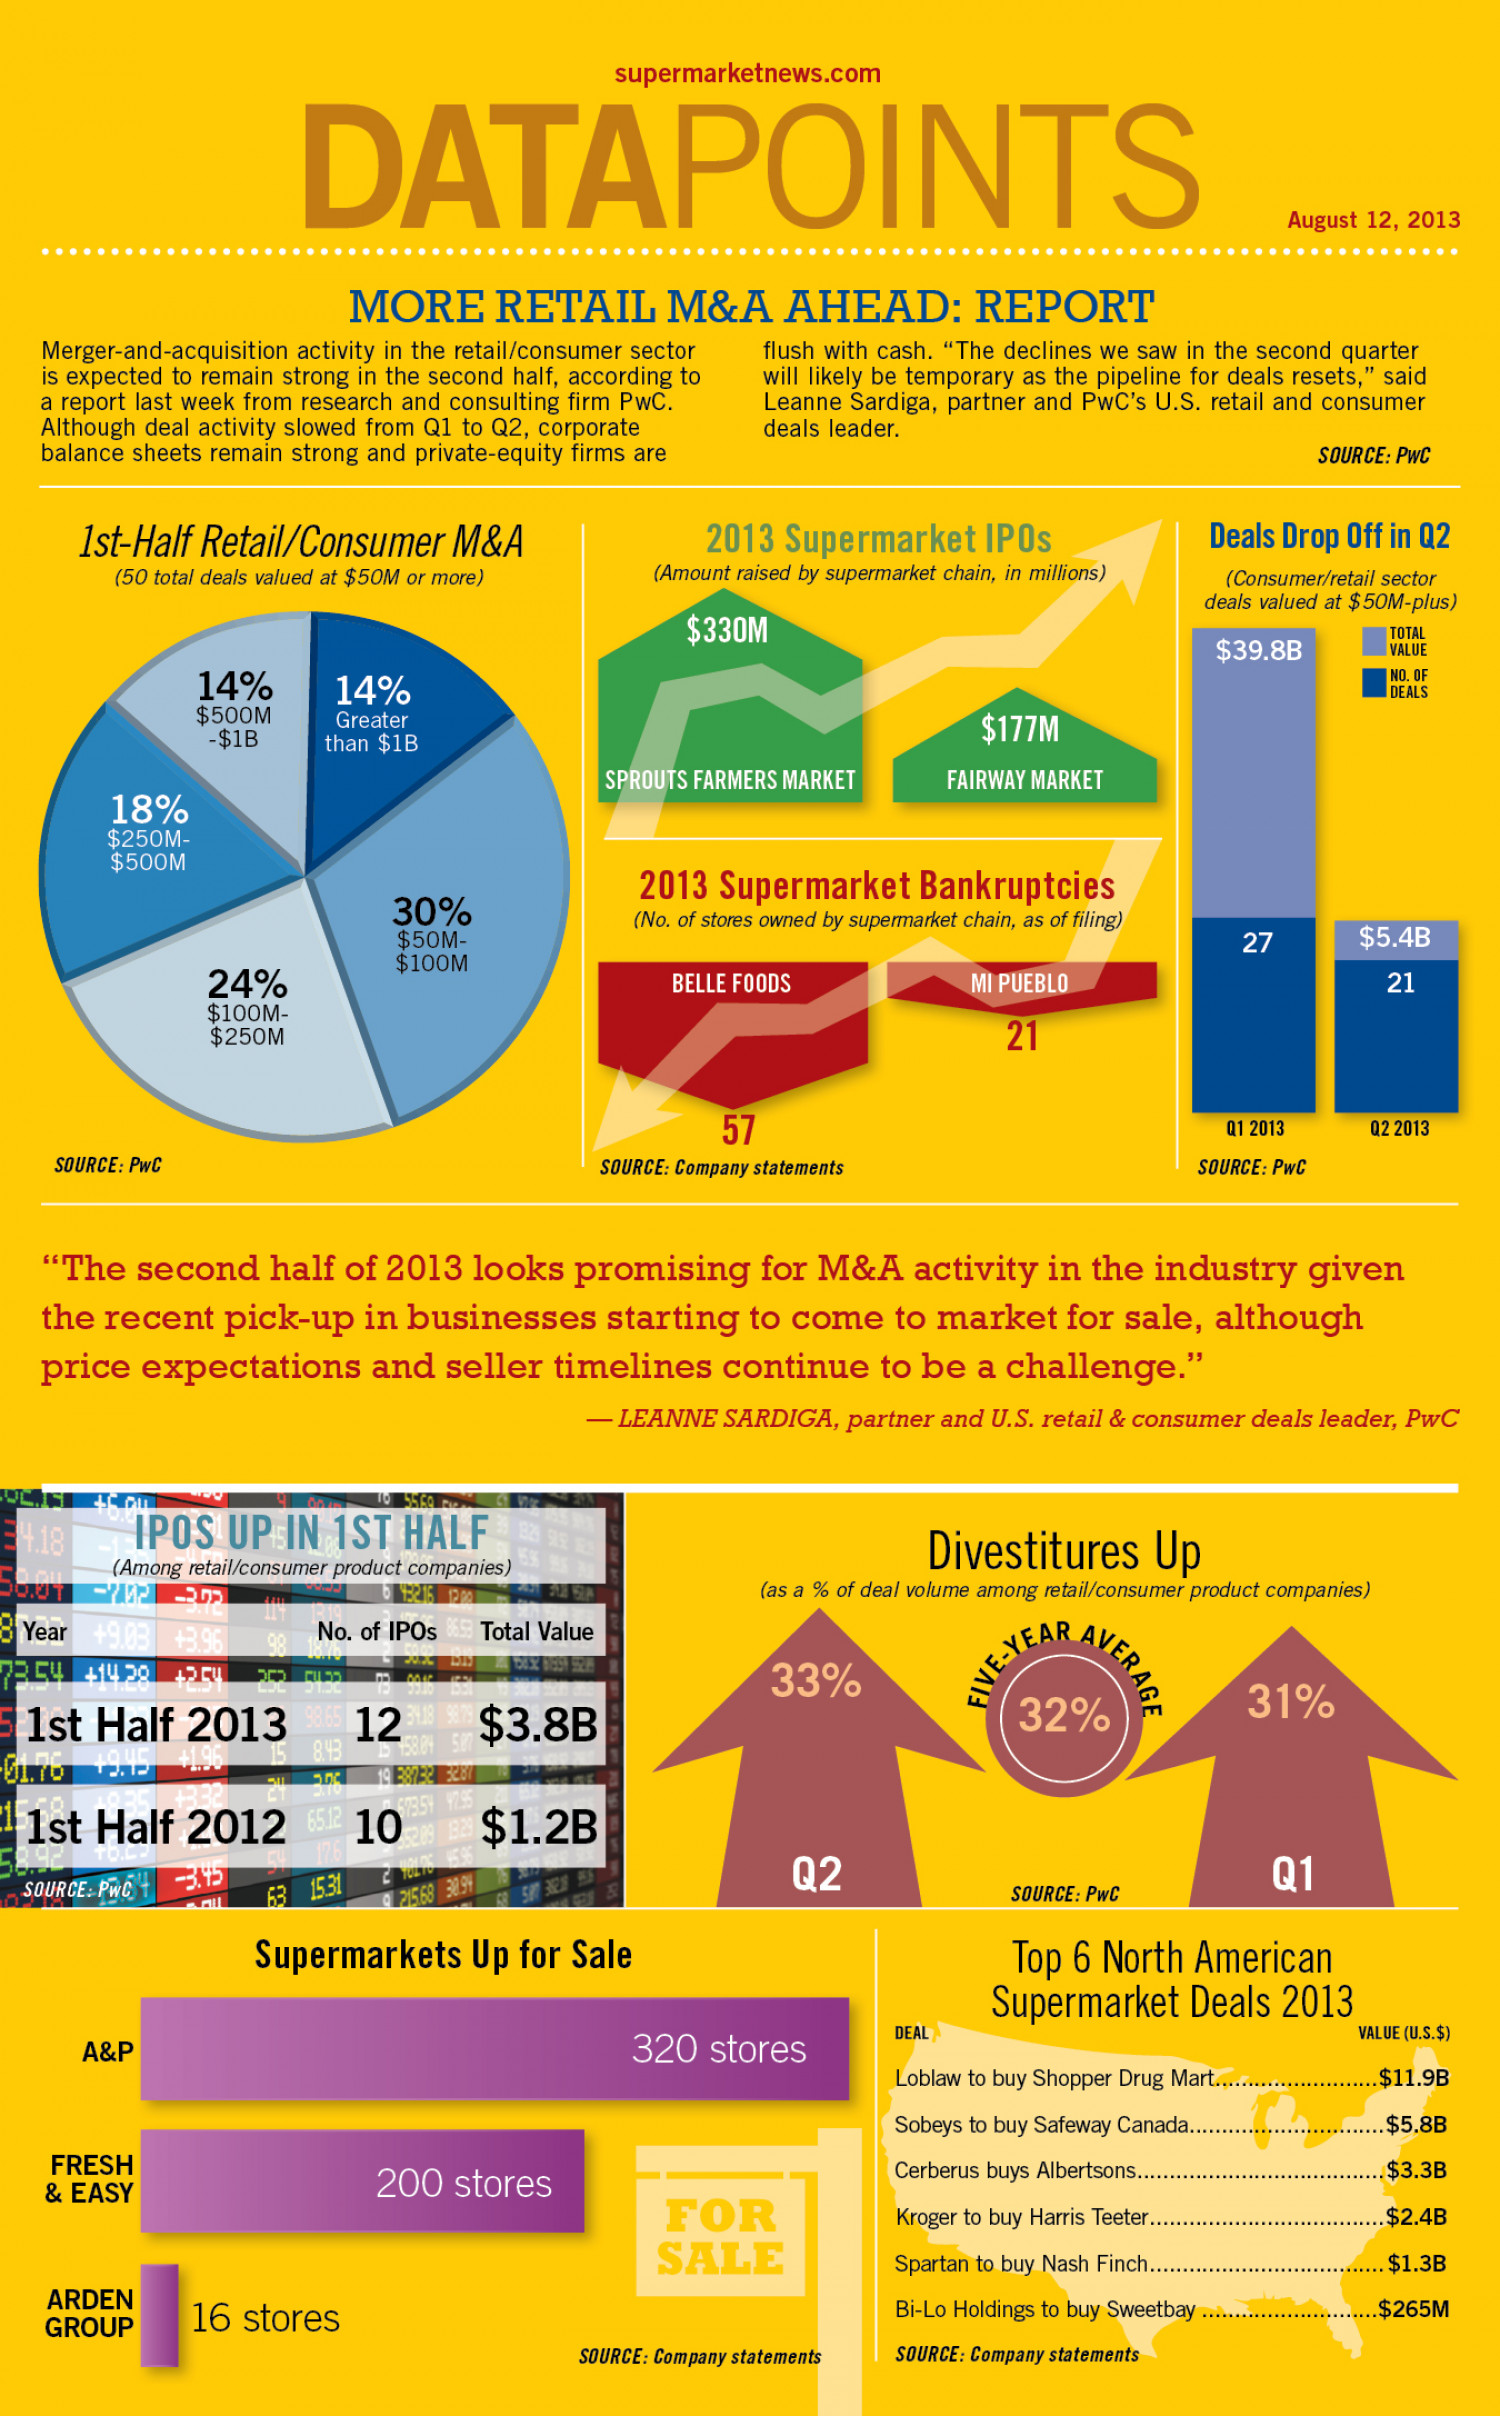 More Retail M&A Ahead: Report Infographic